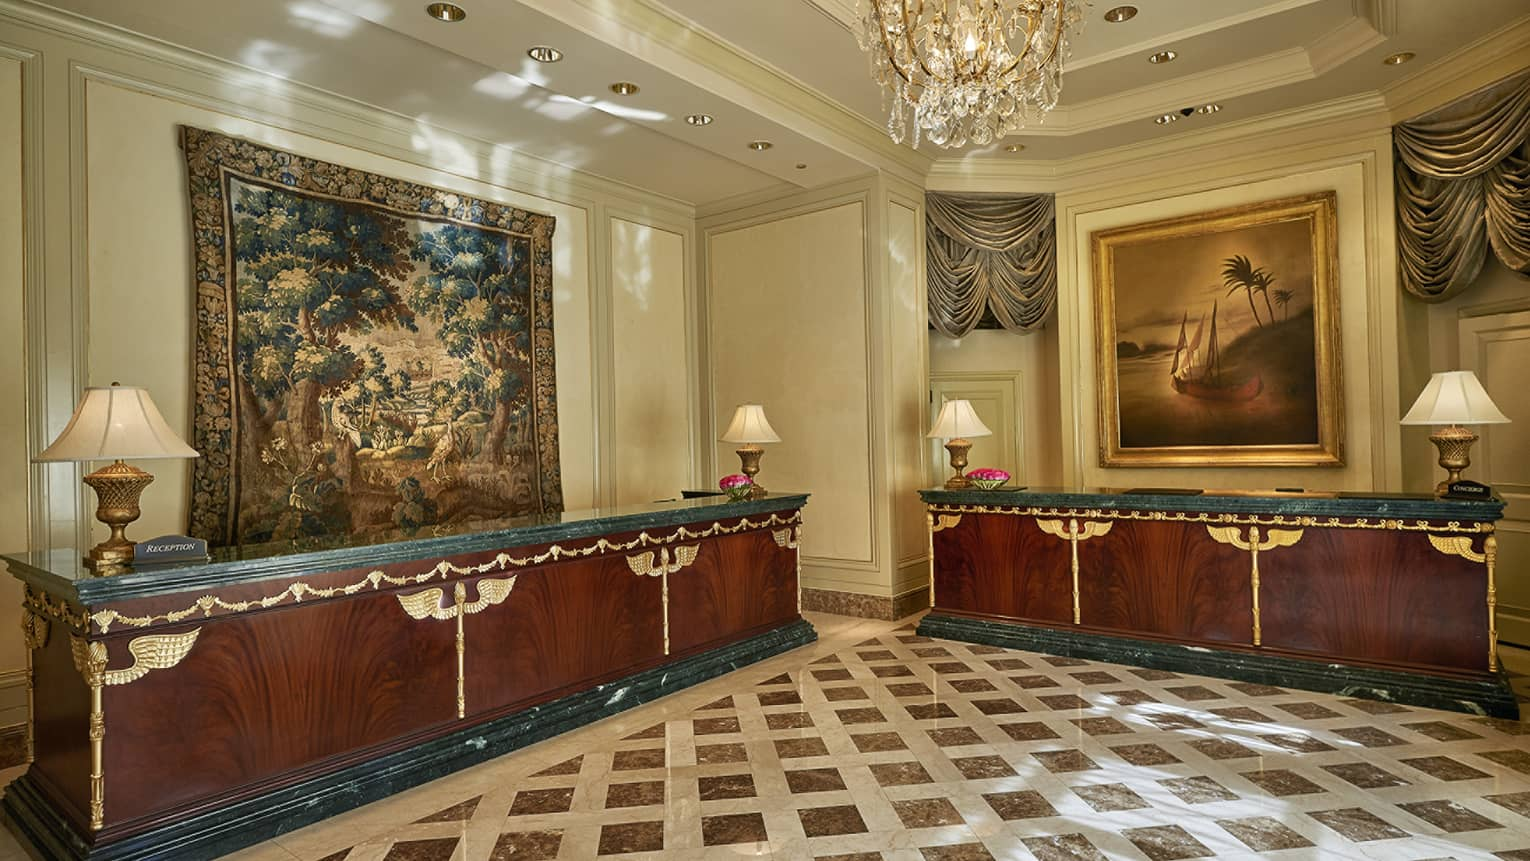 Hotel lobby with tapestry, art and marble flooring